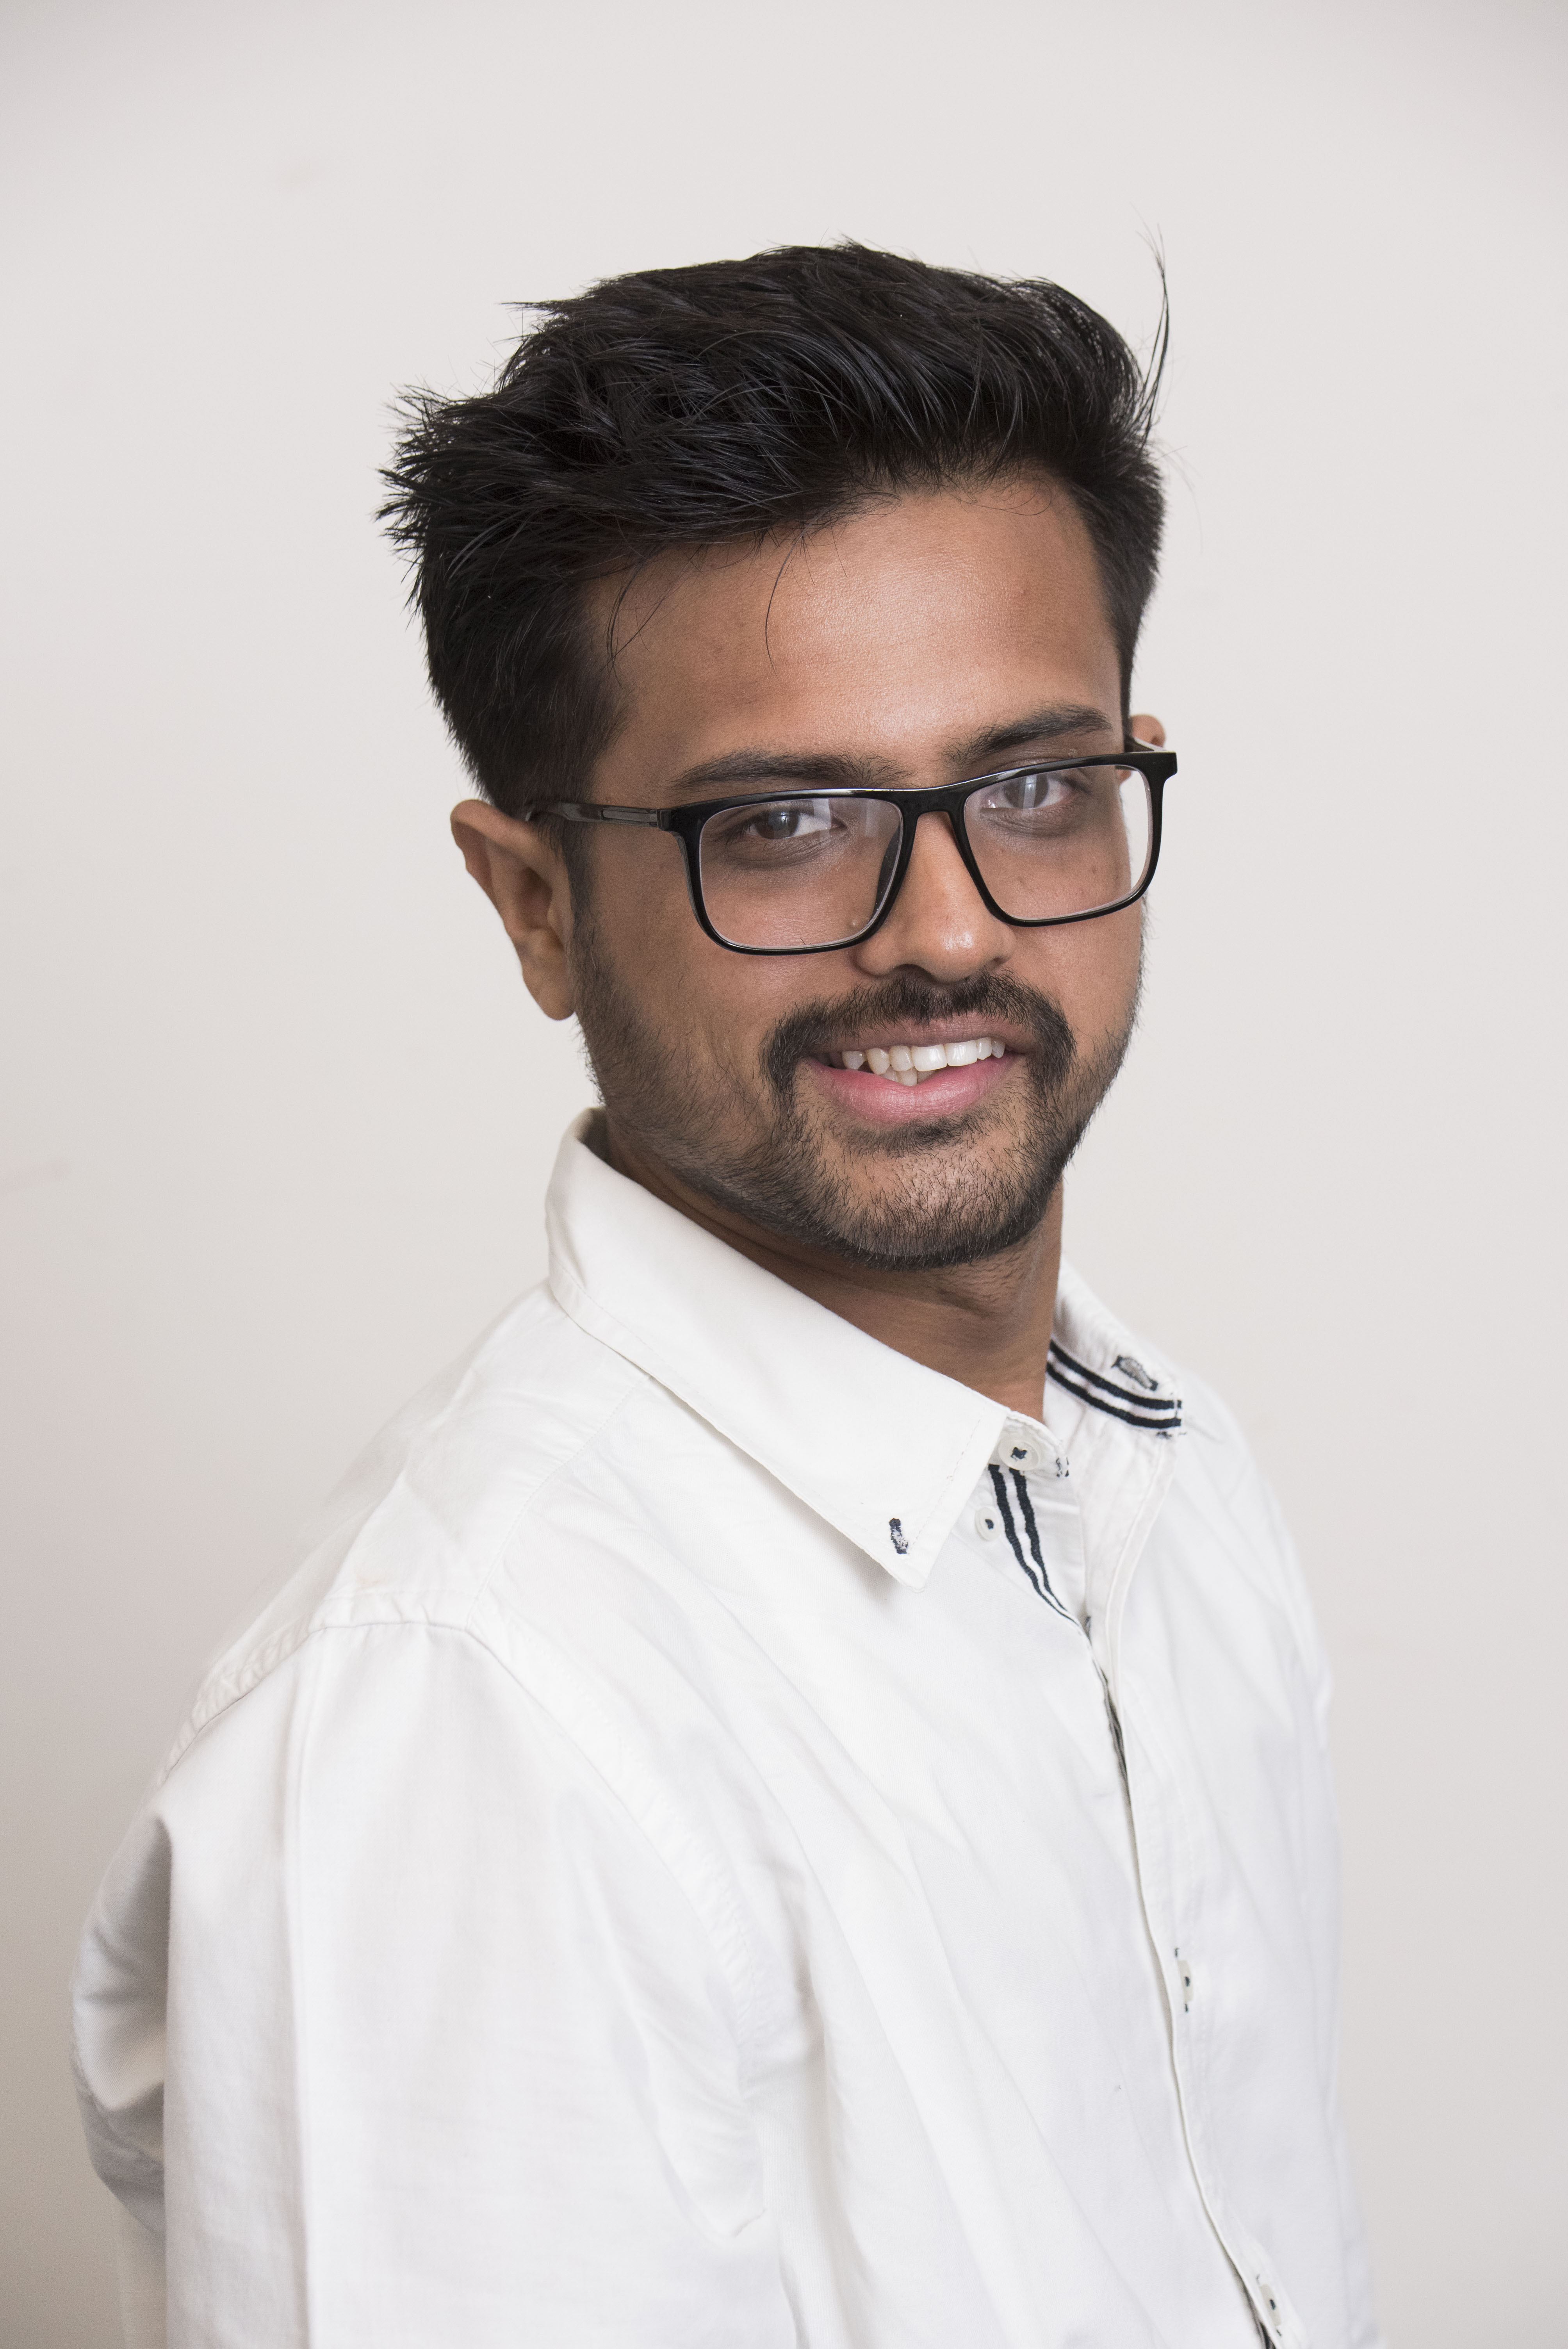 Headshot of Gaurav Bhardwaj